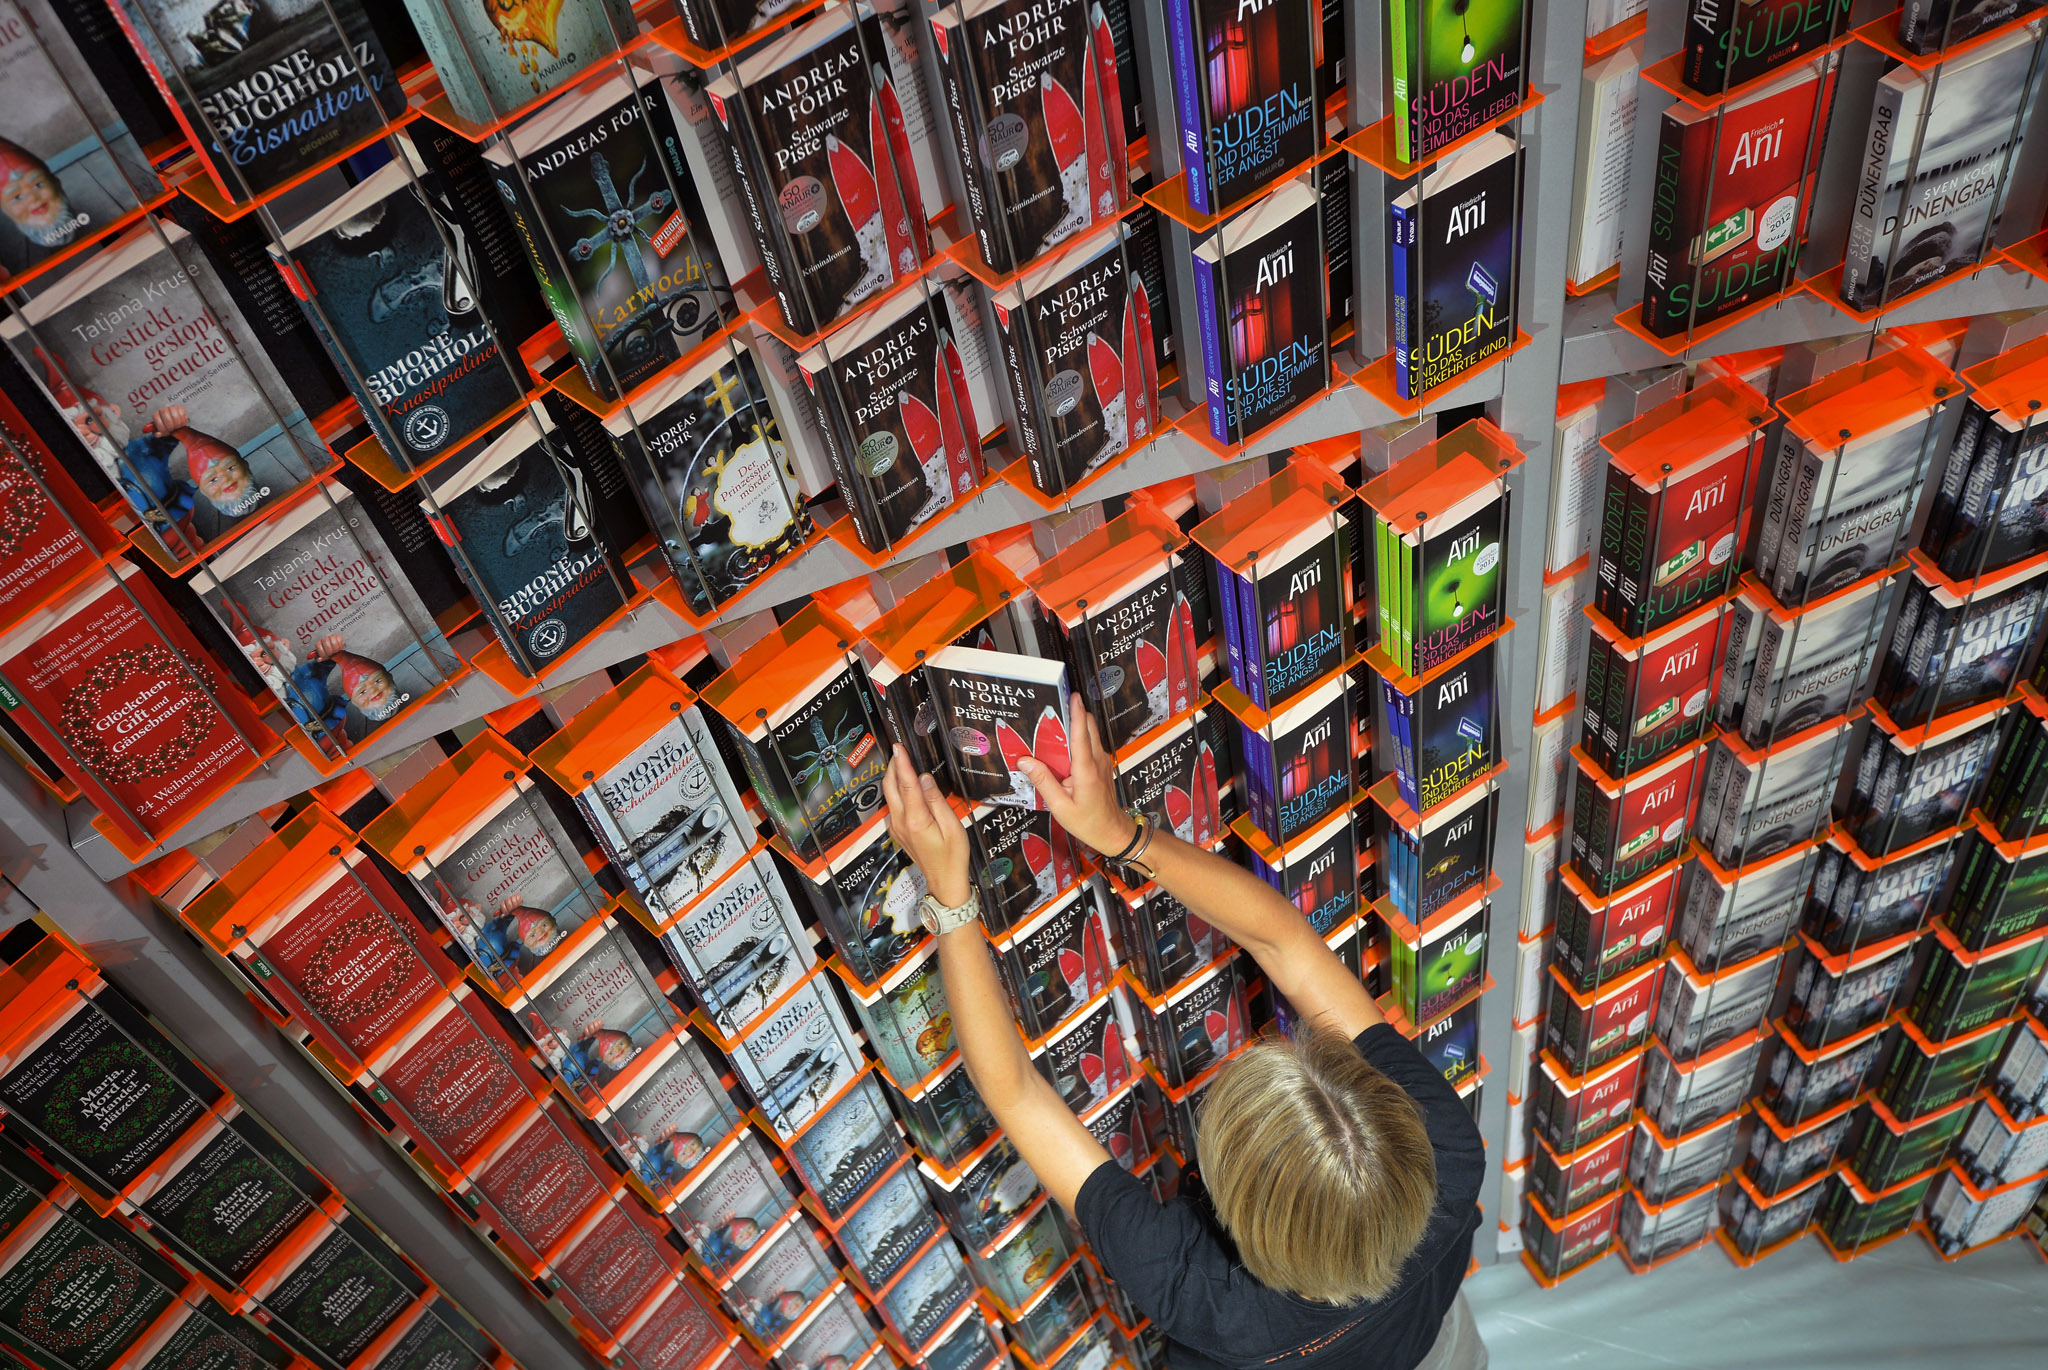 Books are arranged at the Knaur publishing house stand a day before the launch of the 2013 Frankfurt Book in Frankfurt, Germany.